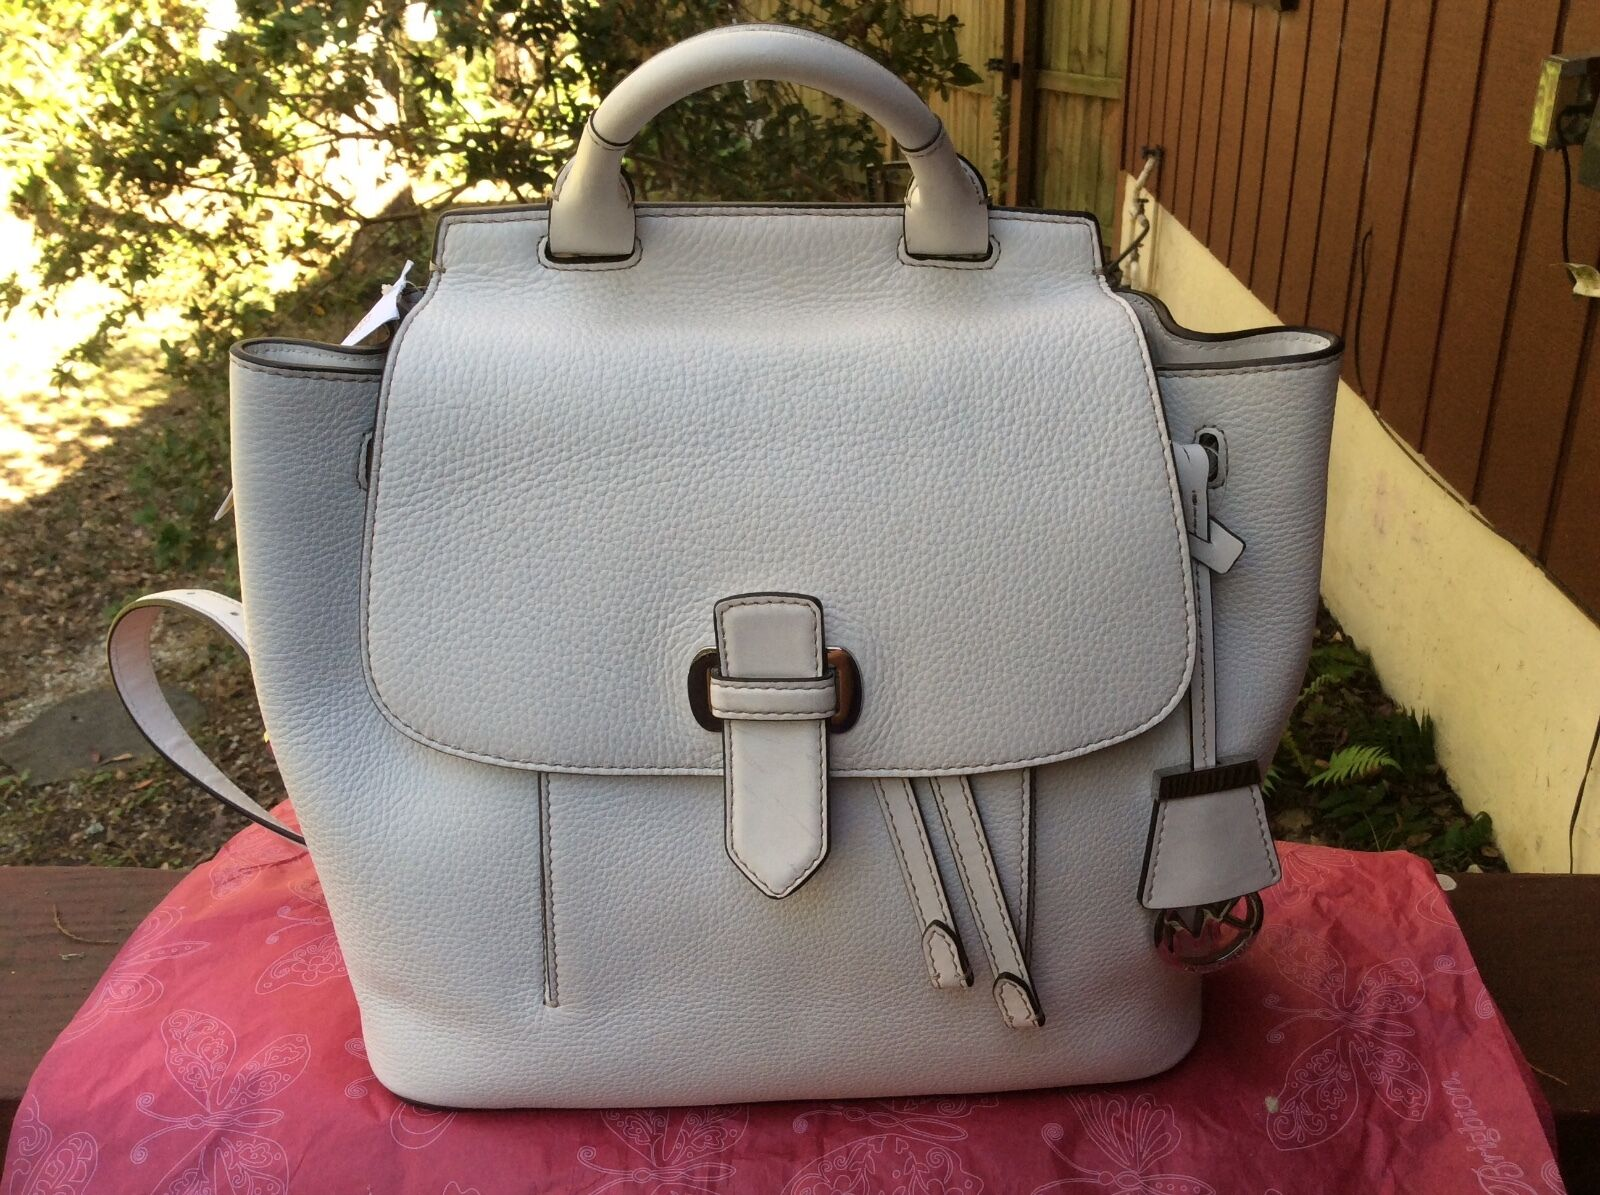 78a33b2d7f2c ... Picture 1 of 12 ... Michael Kors New Romy Medium Desert SuedeGold  SuedeLeather Backpack Marosia Mart ...